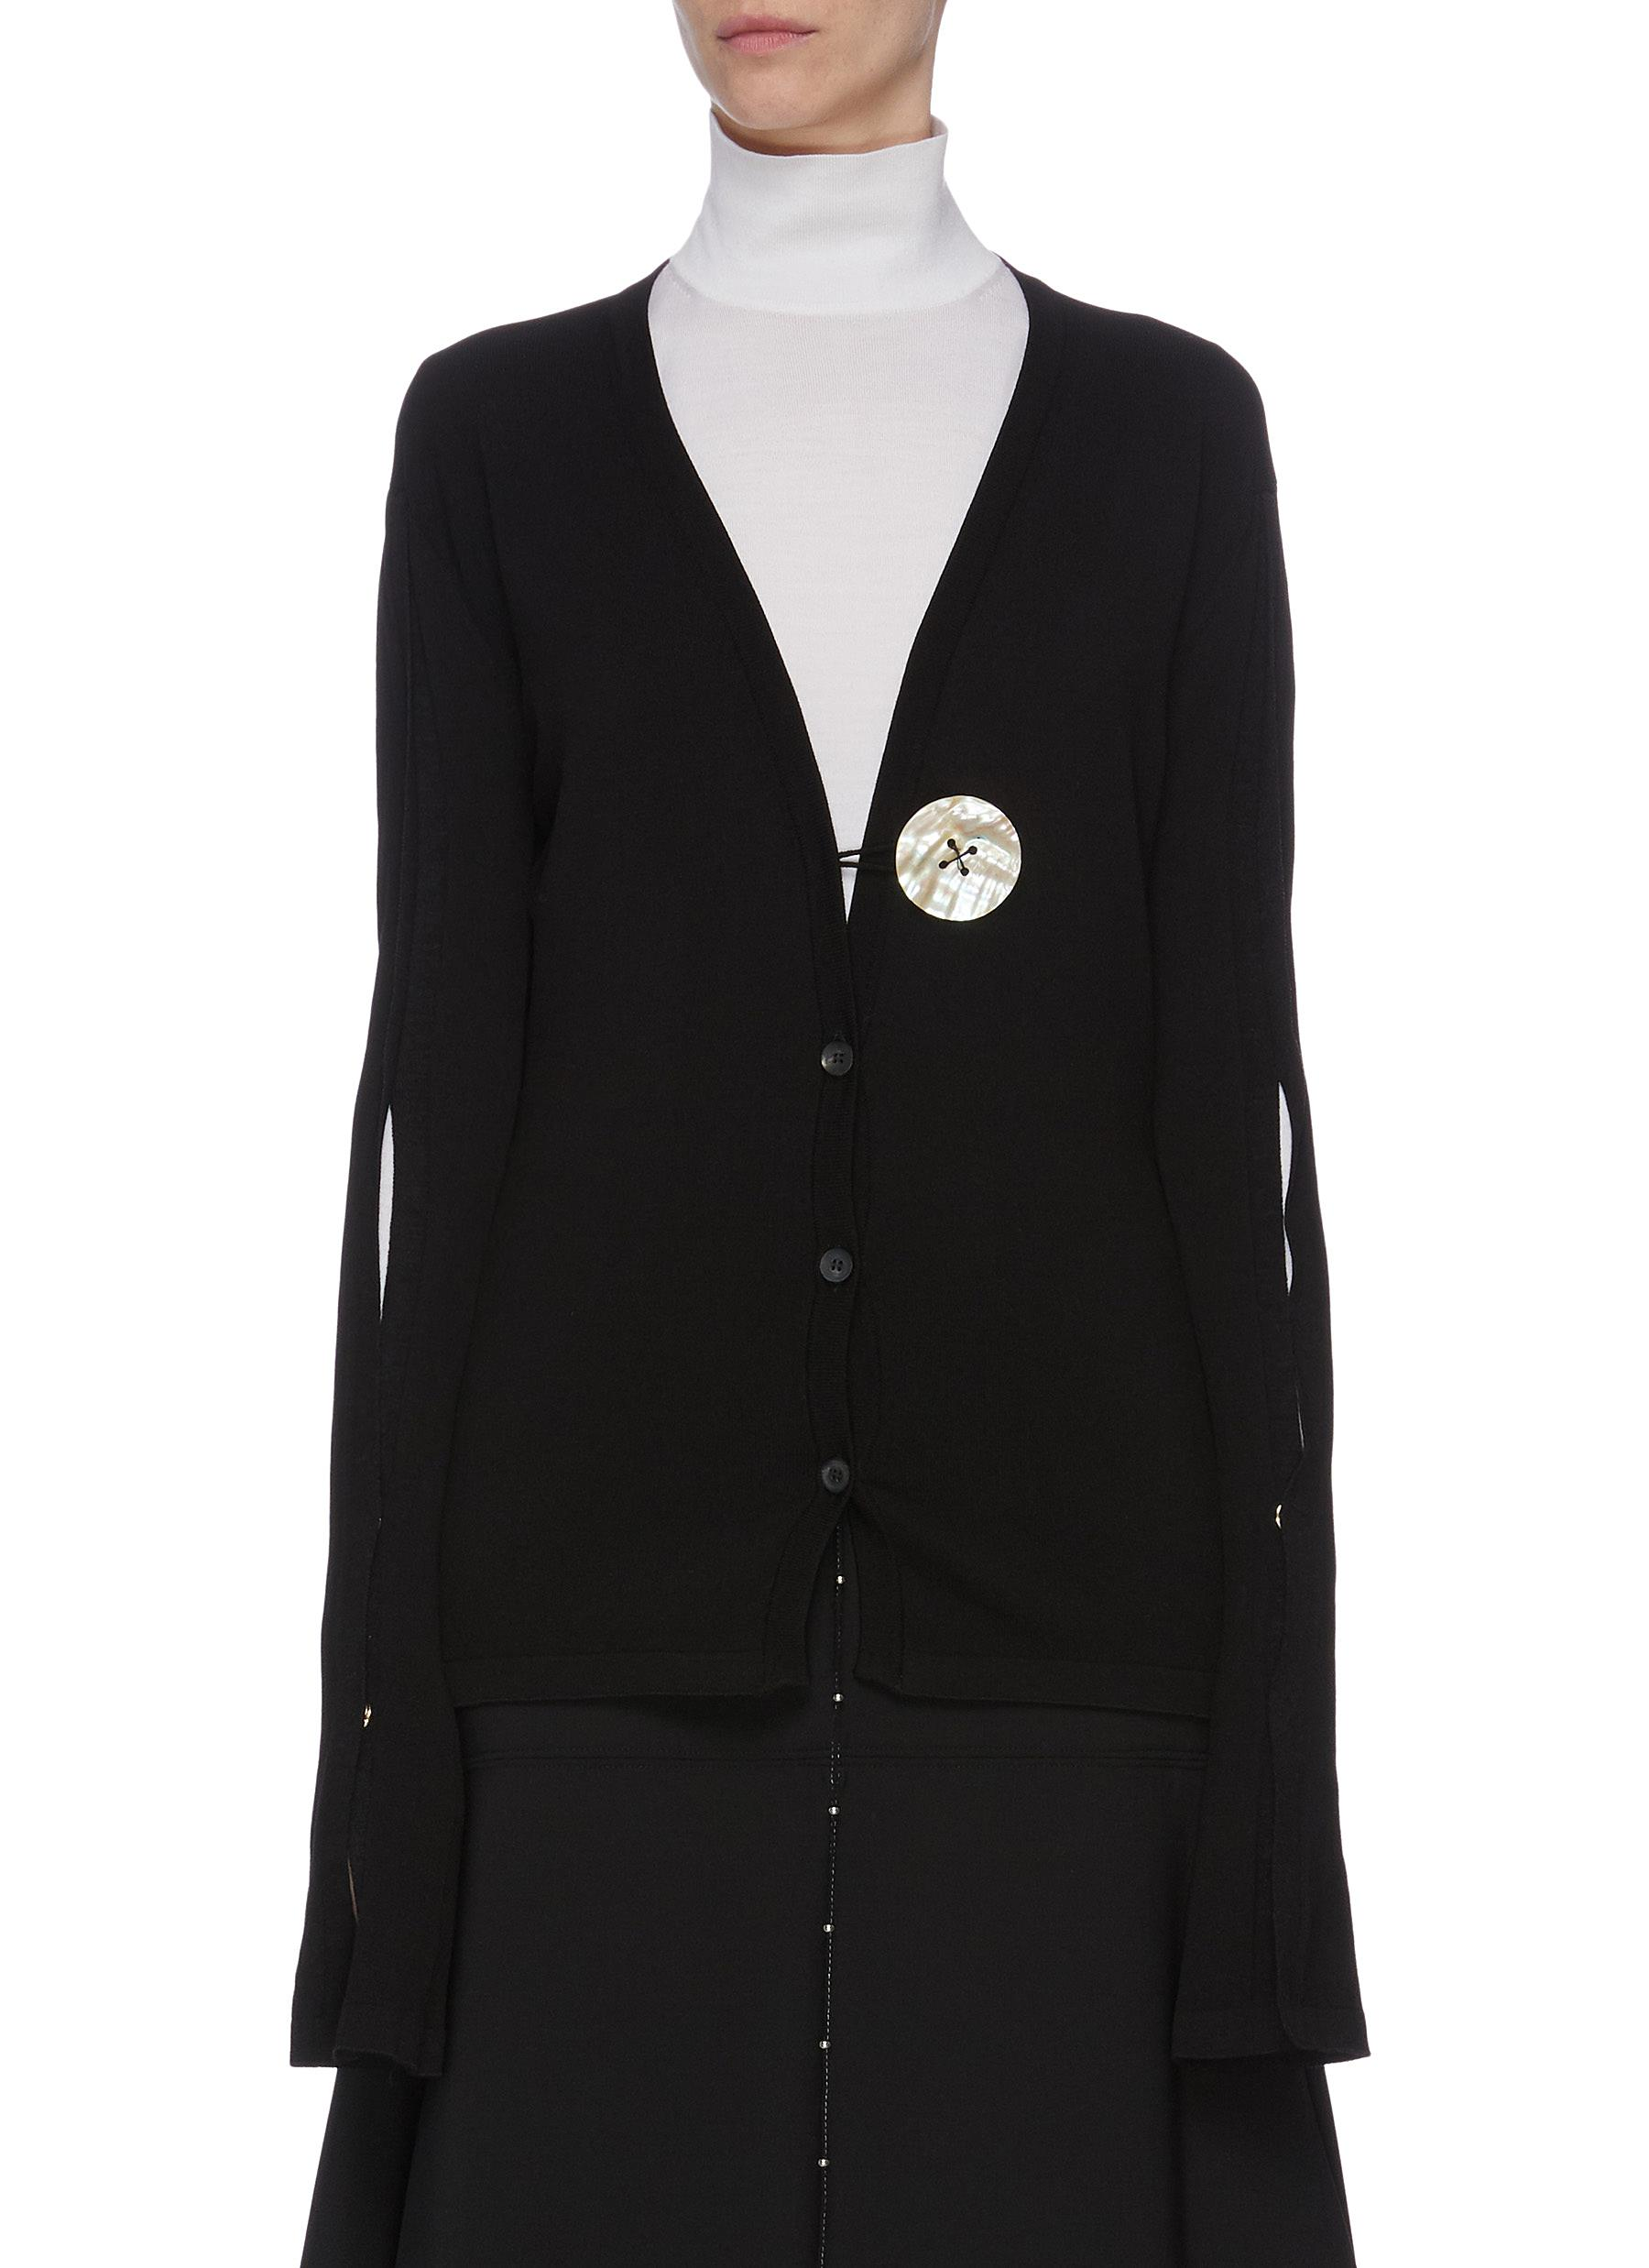 Slit sleeve cardigan by Ellery